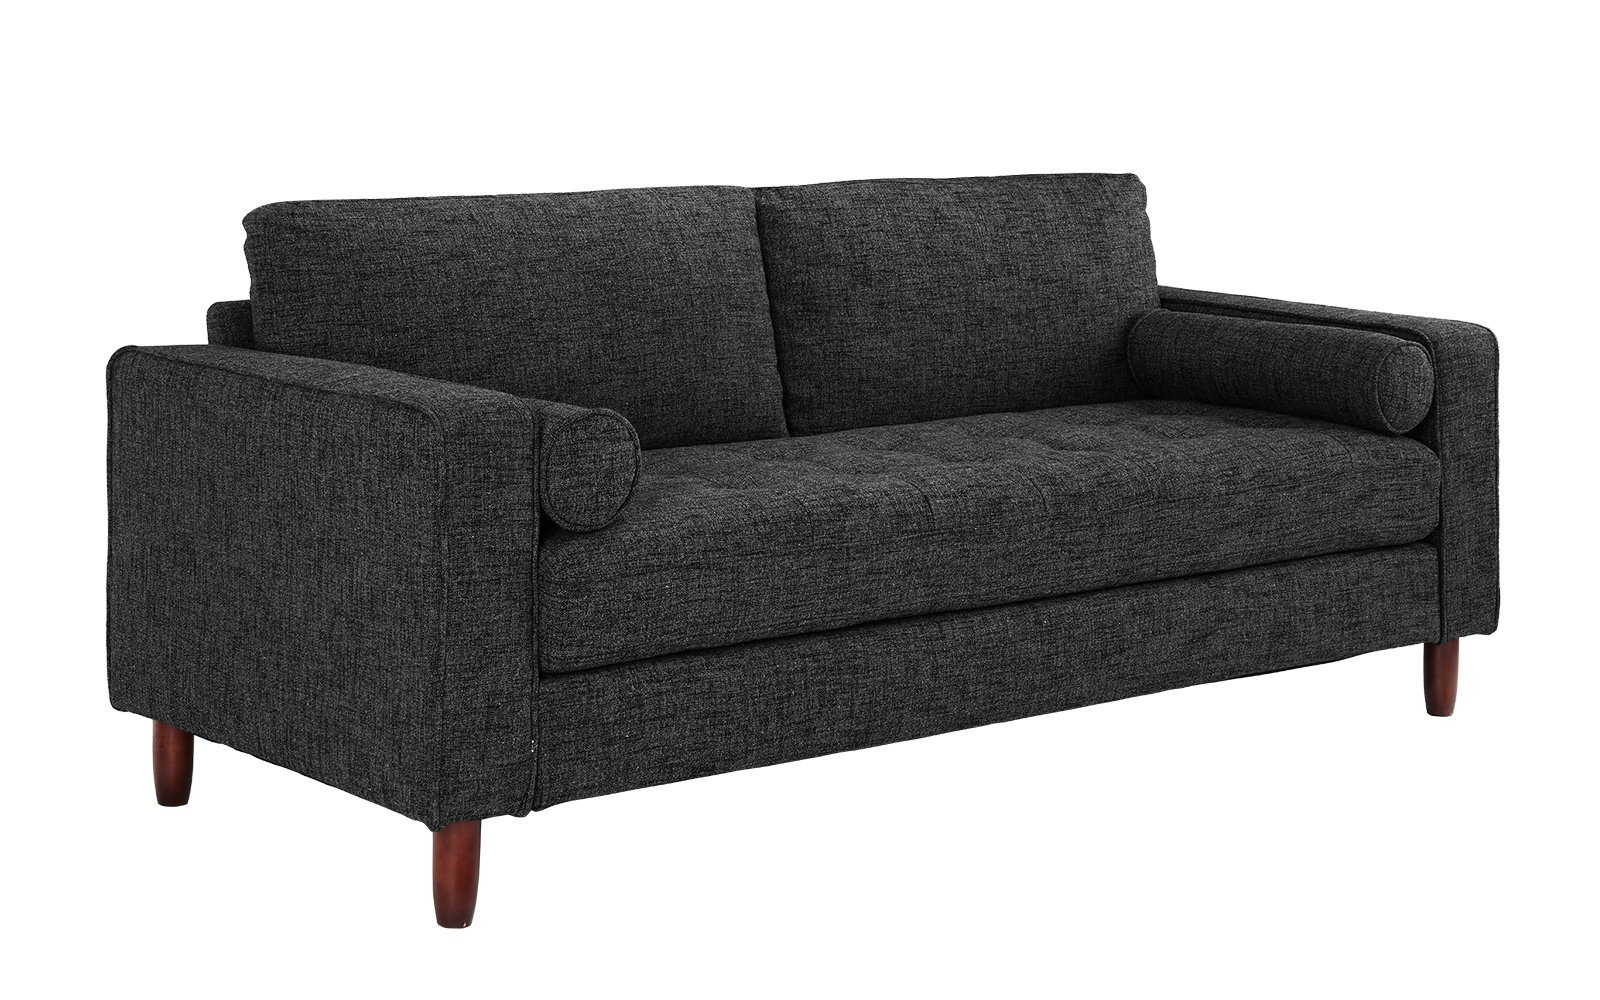 Divano Roma Modern Sofas, Dark Grey - Divano Roma Furniture's upholstered sofa with armrests comes in soft and bright color variances Features hand picked soft and durable linen fabric upholstery with dark brown wooden legs Firmly padded cushions that use high density foam for added comfort - sofas-couches, living-room-furniture, living-room - 81Exbg%2By1ZL -